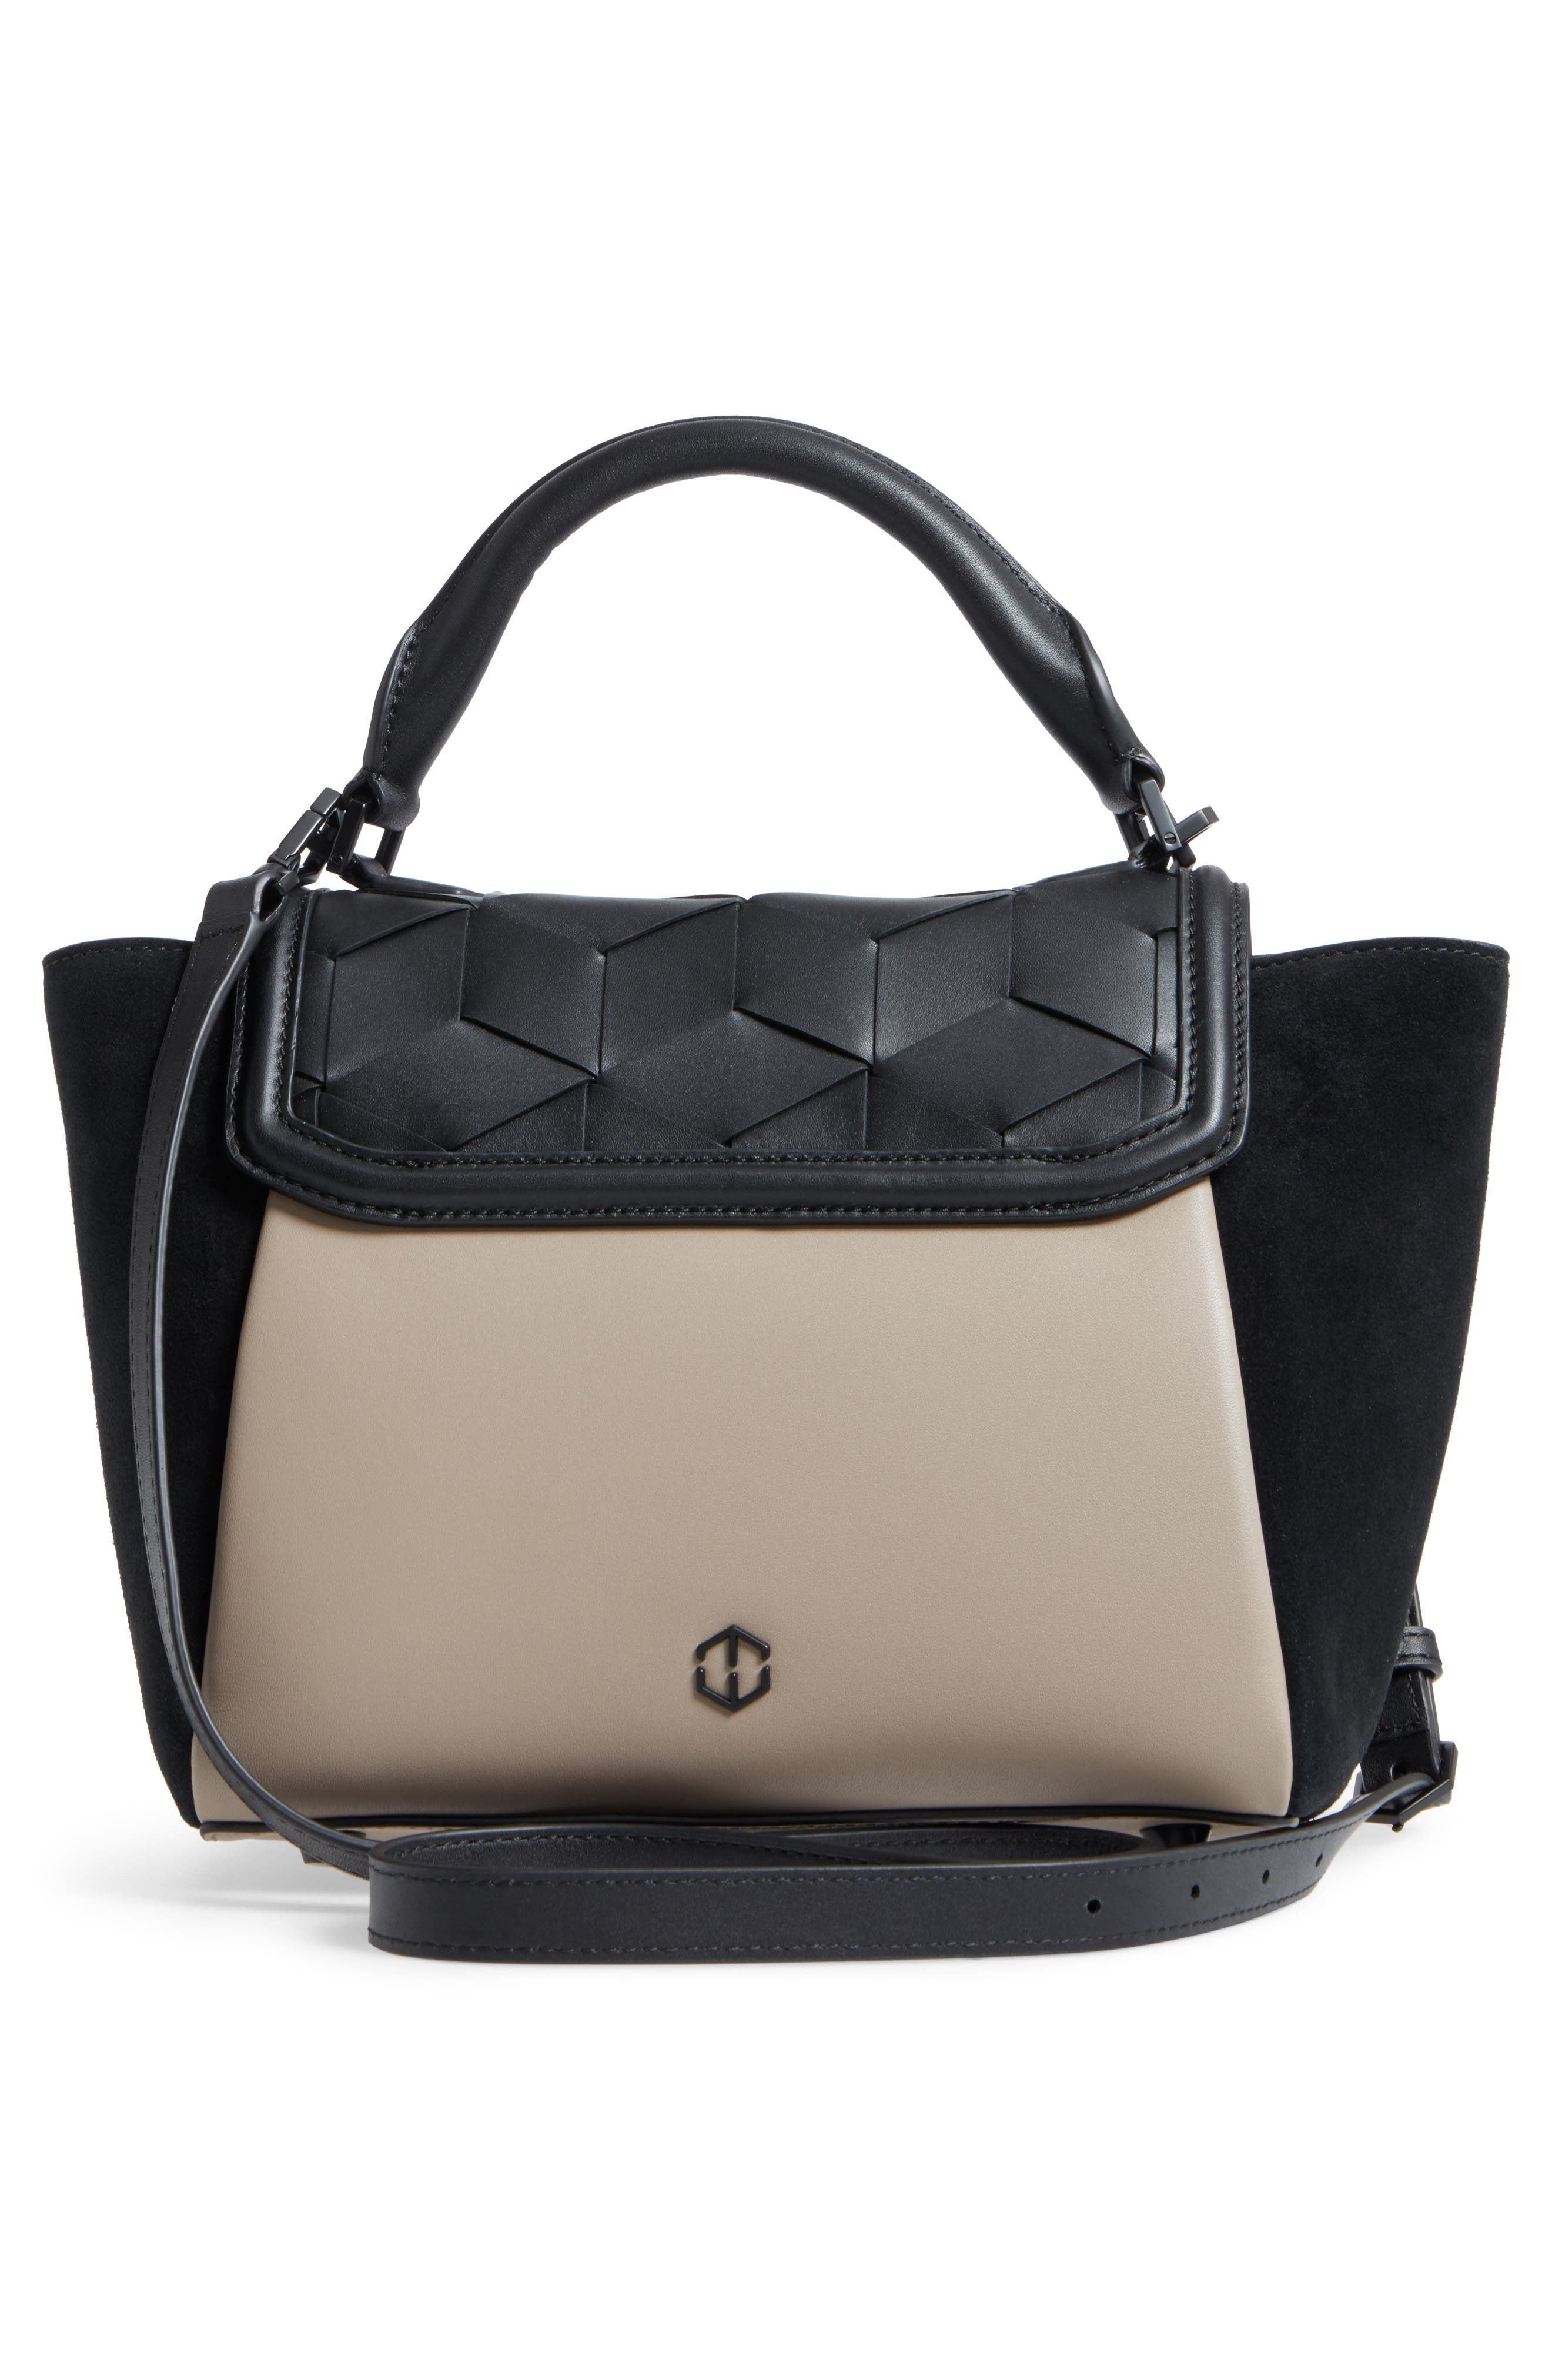 Small Saunter Colorblocked Leather & Suede Top Handle Satchel,                             Alternate thumbnail 2, color,                             Black/ Taupe